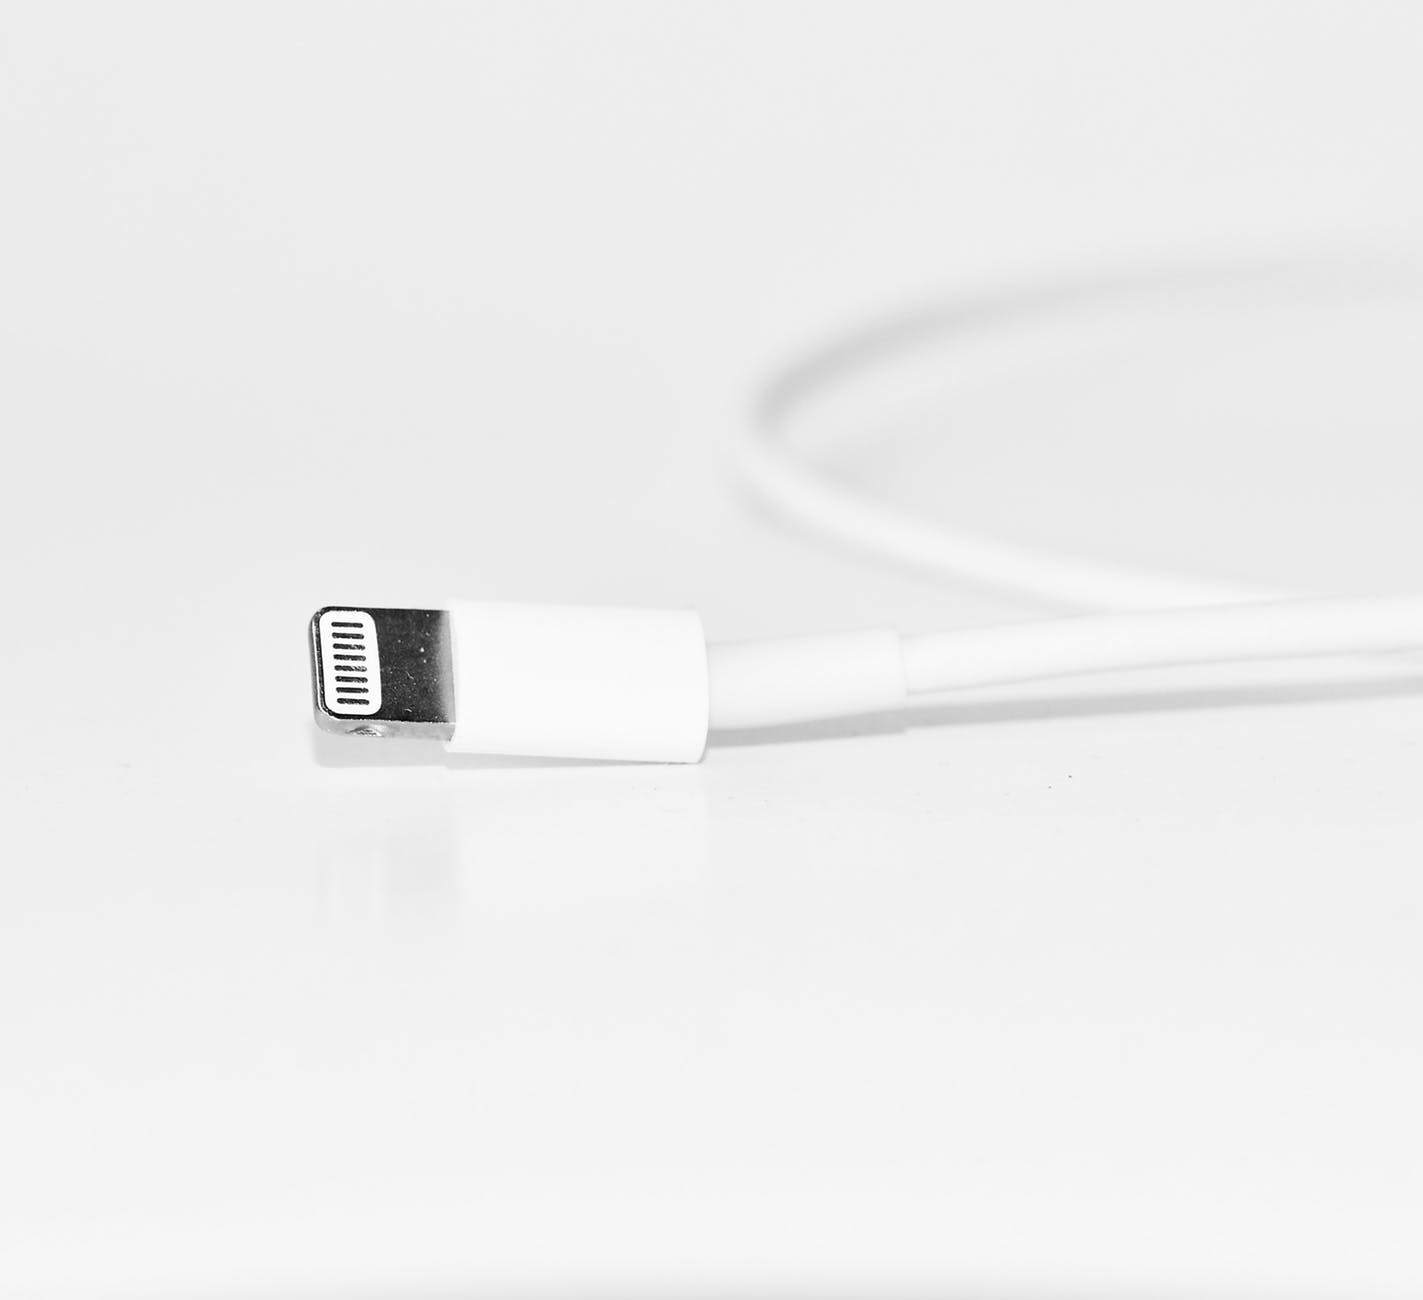 close up photography of white iphone charger